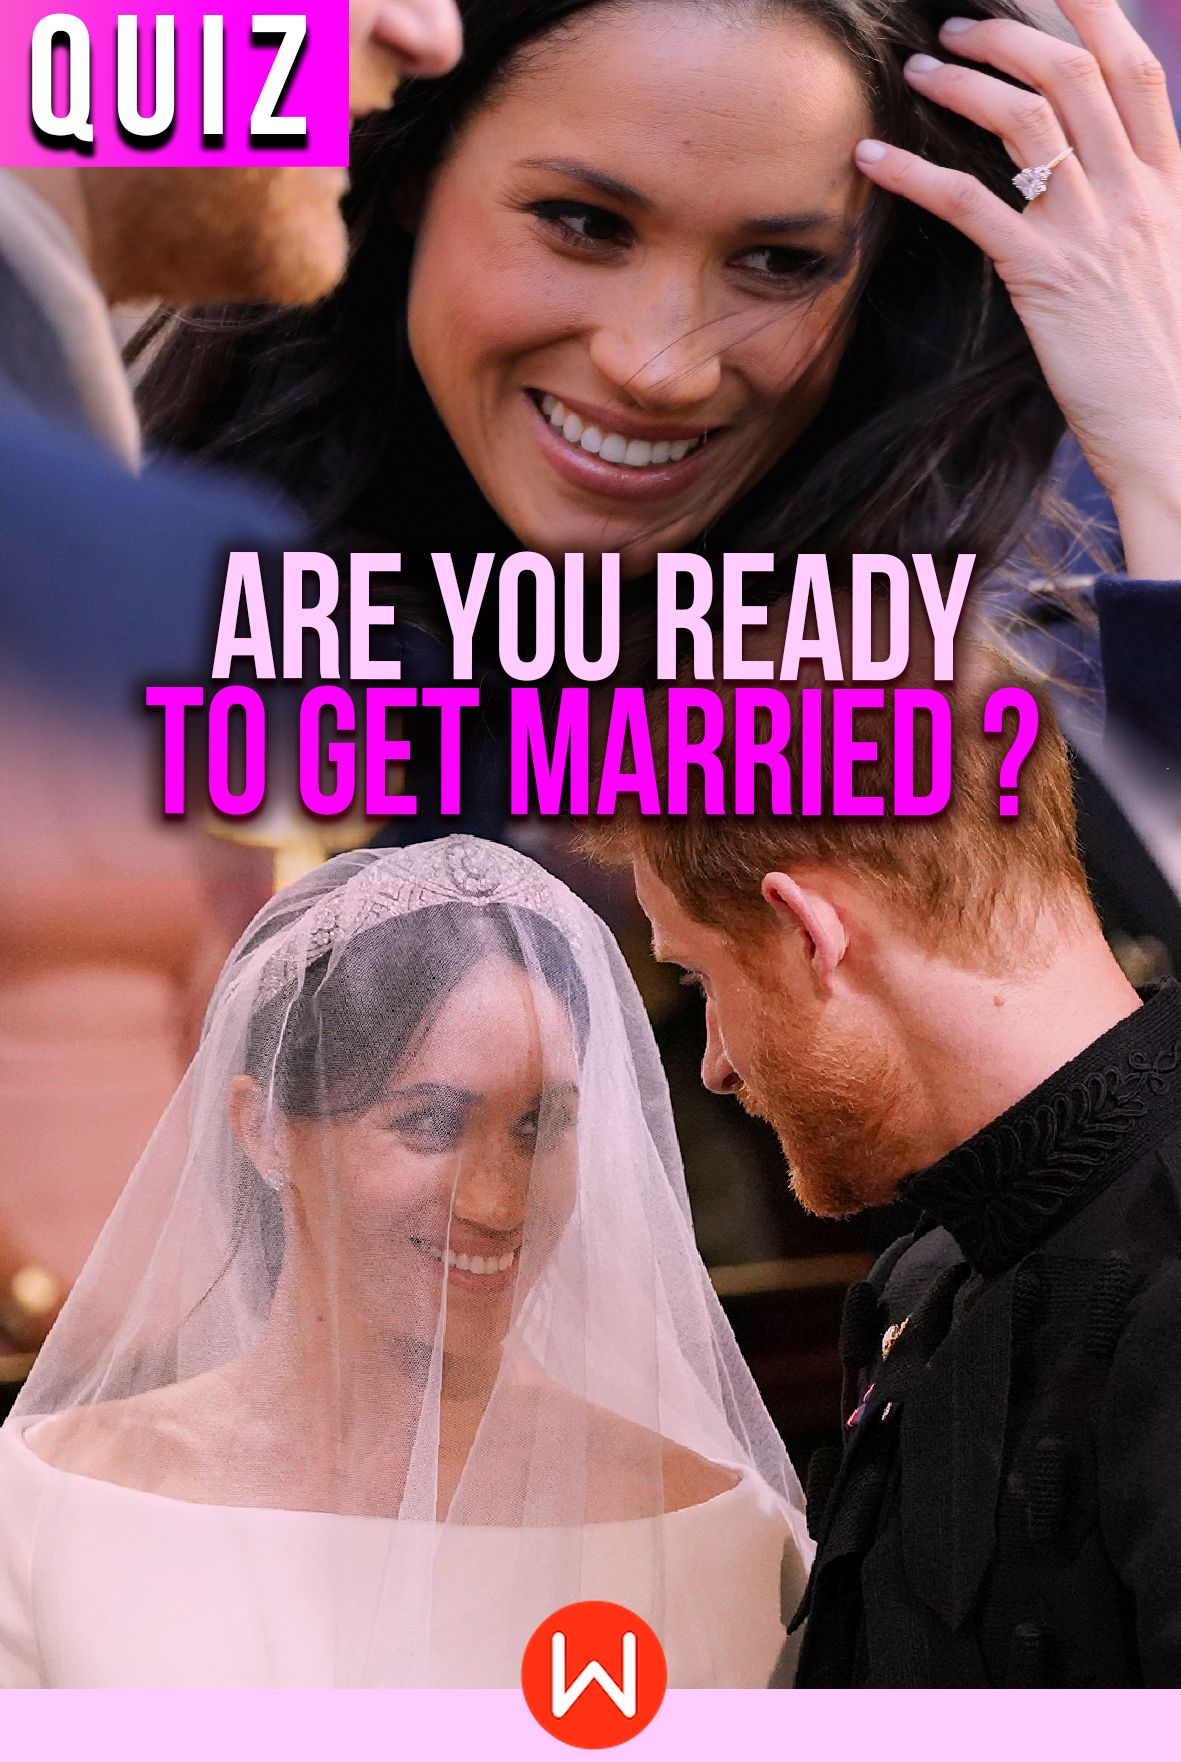 Quiz: Are You Ready to Get Married? | Who Are You? | Relationship